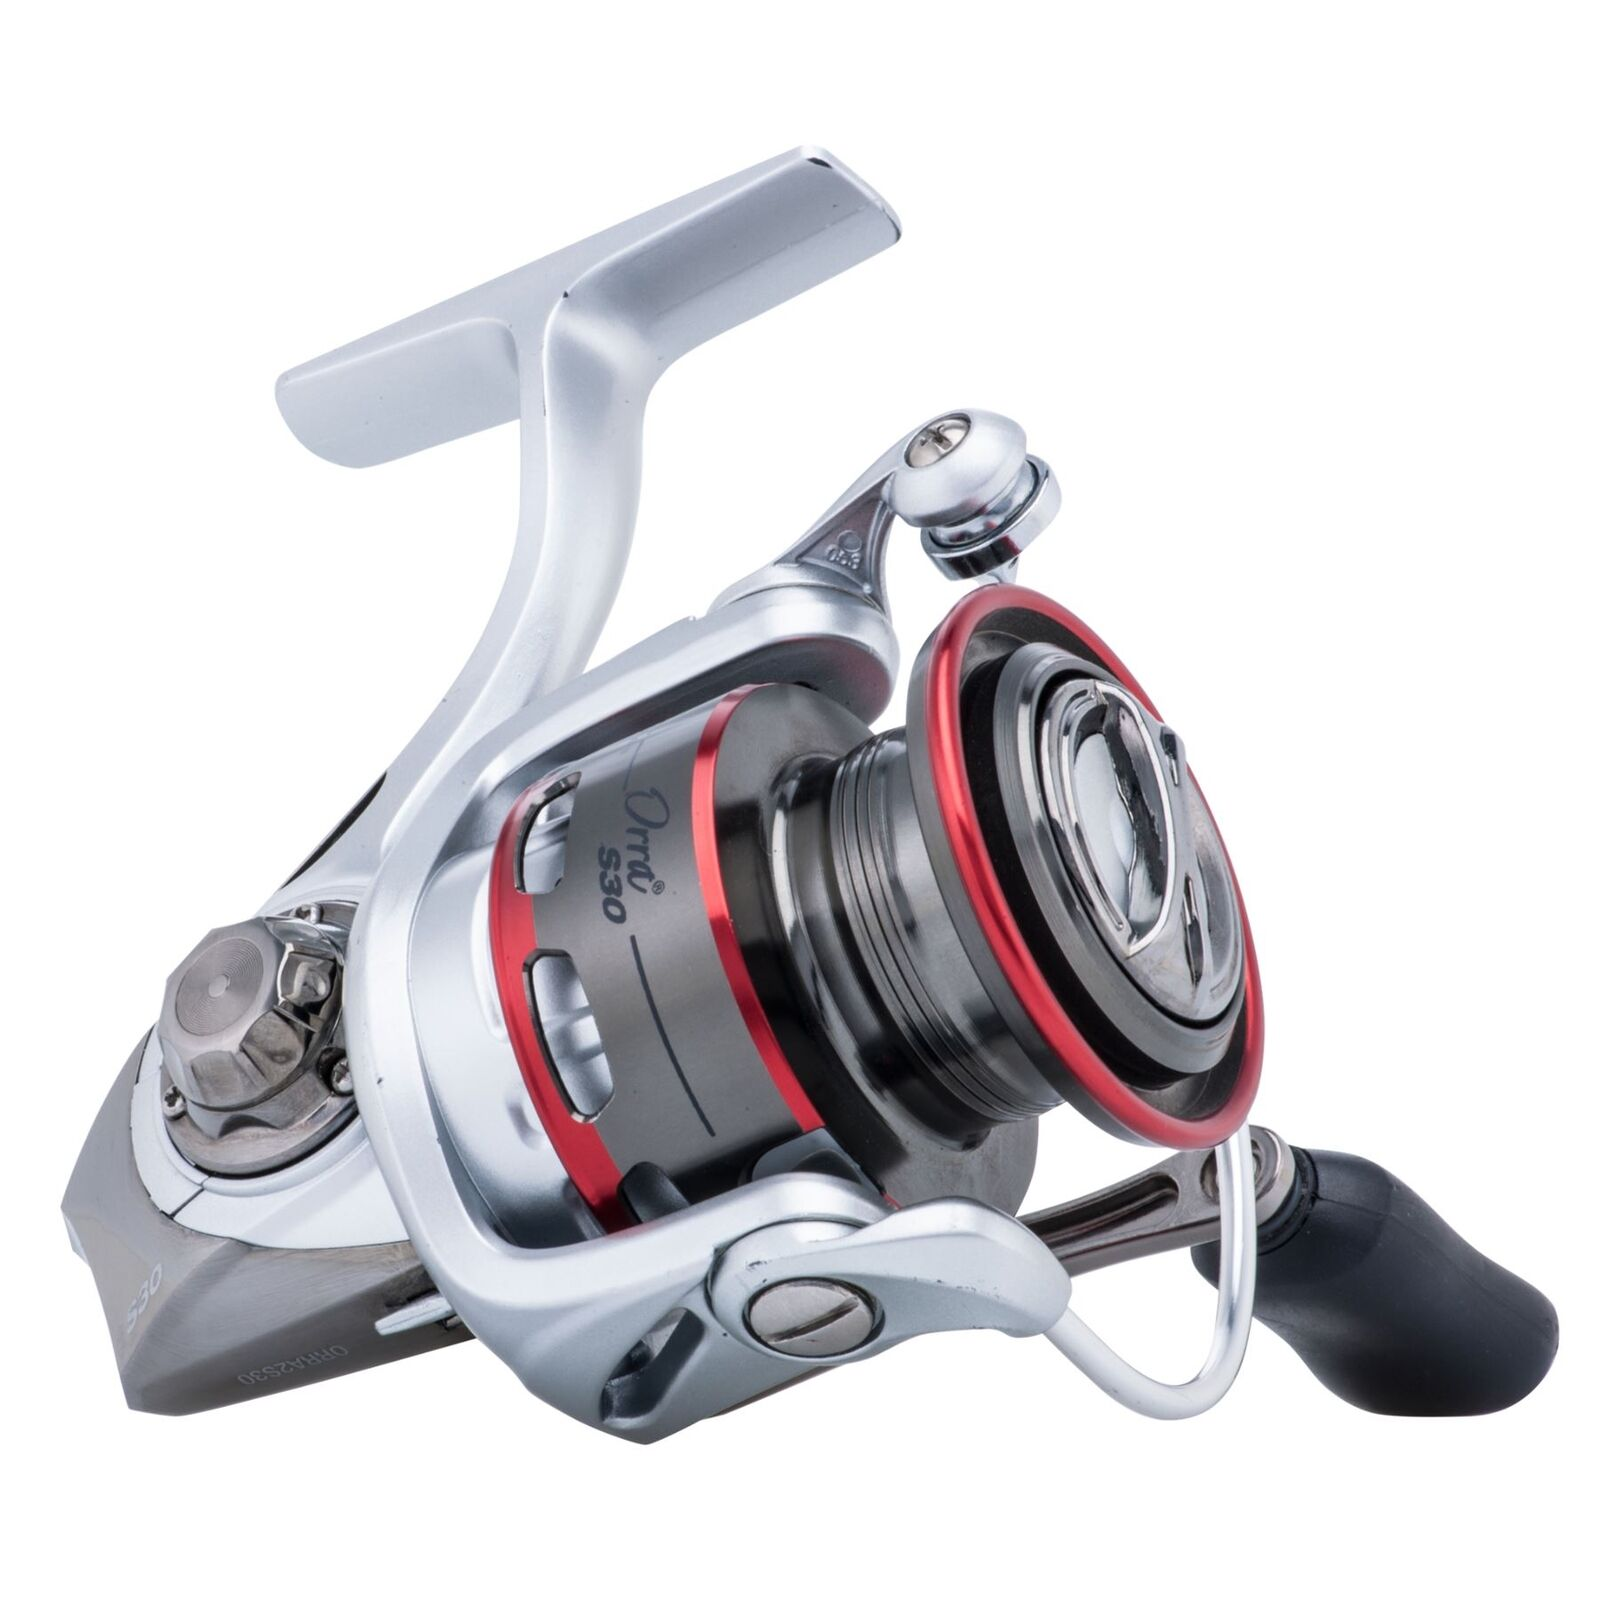 Abu Orra 2 S 30 FD   Spinning Fishing Reel